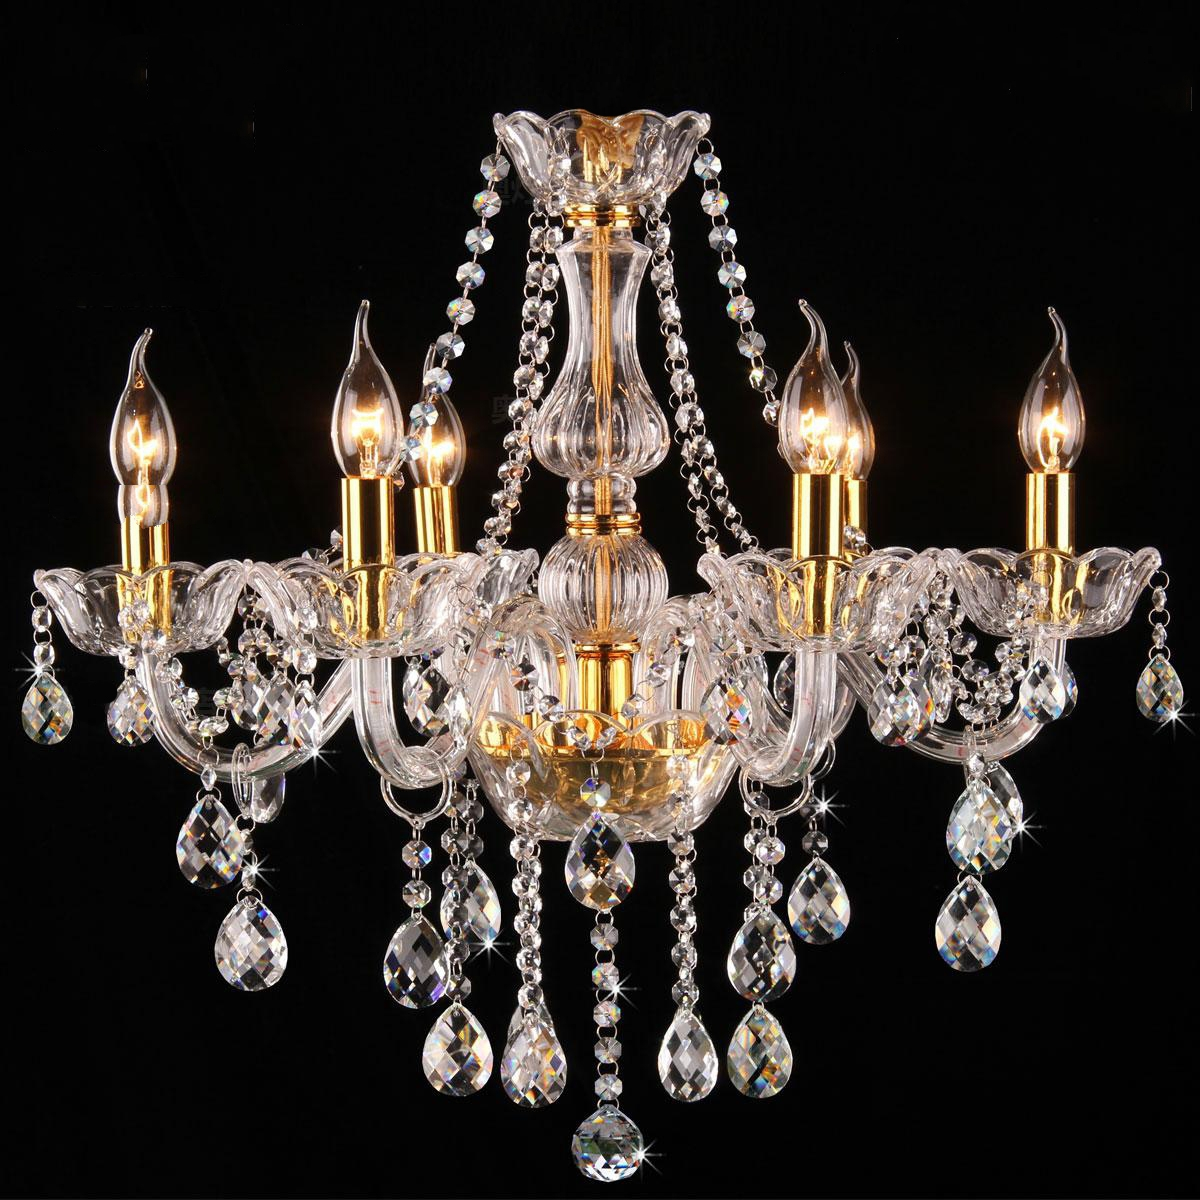 6 8005 Genuine K9 Crystal Chandelier Clear Golden 2 8 8 Arms 10 Arms